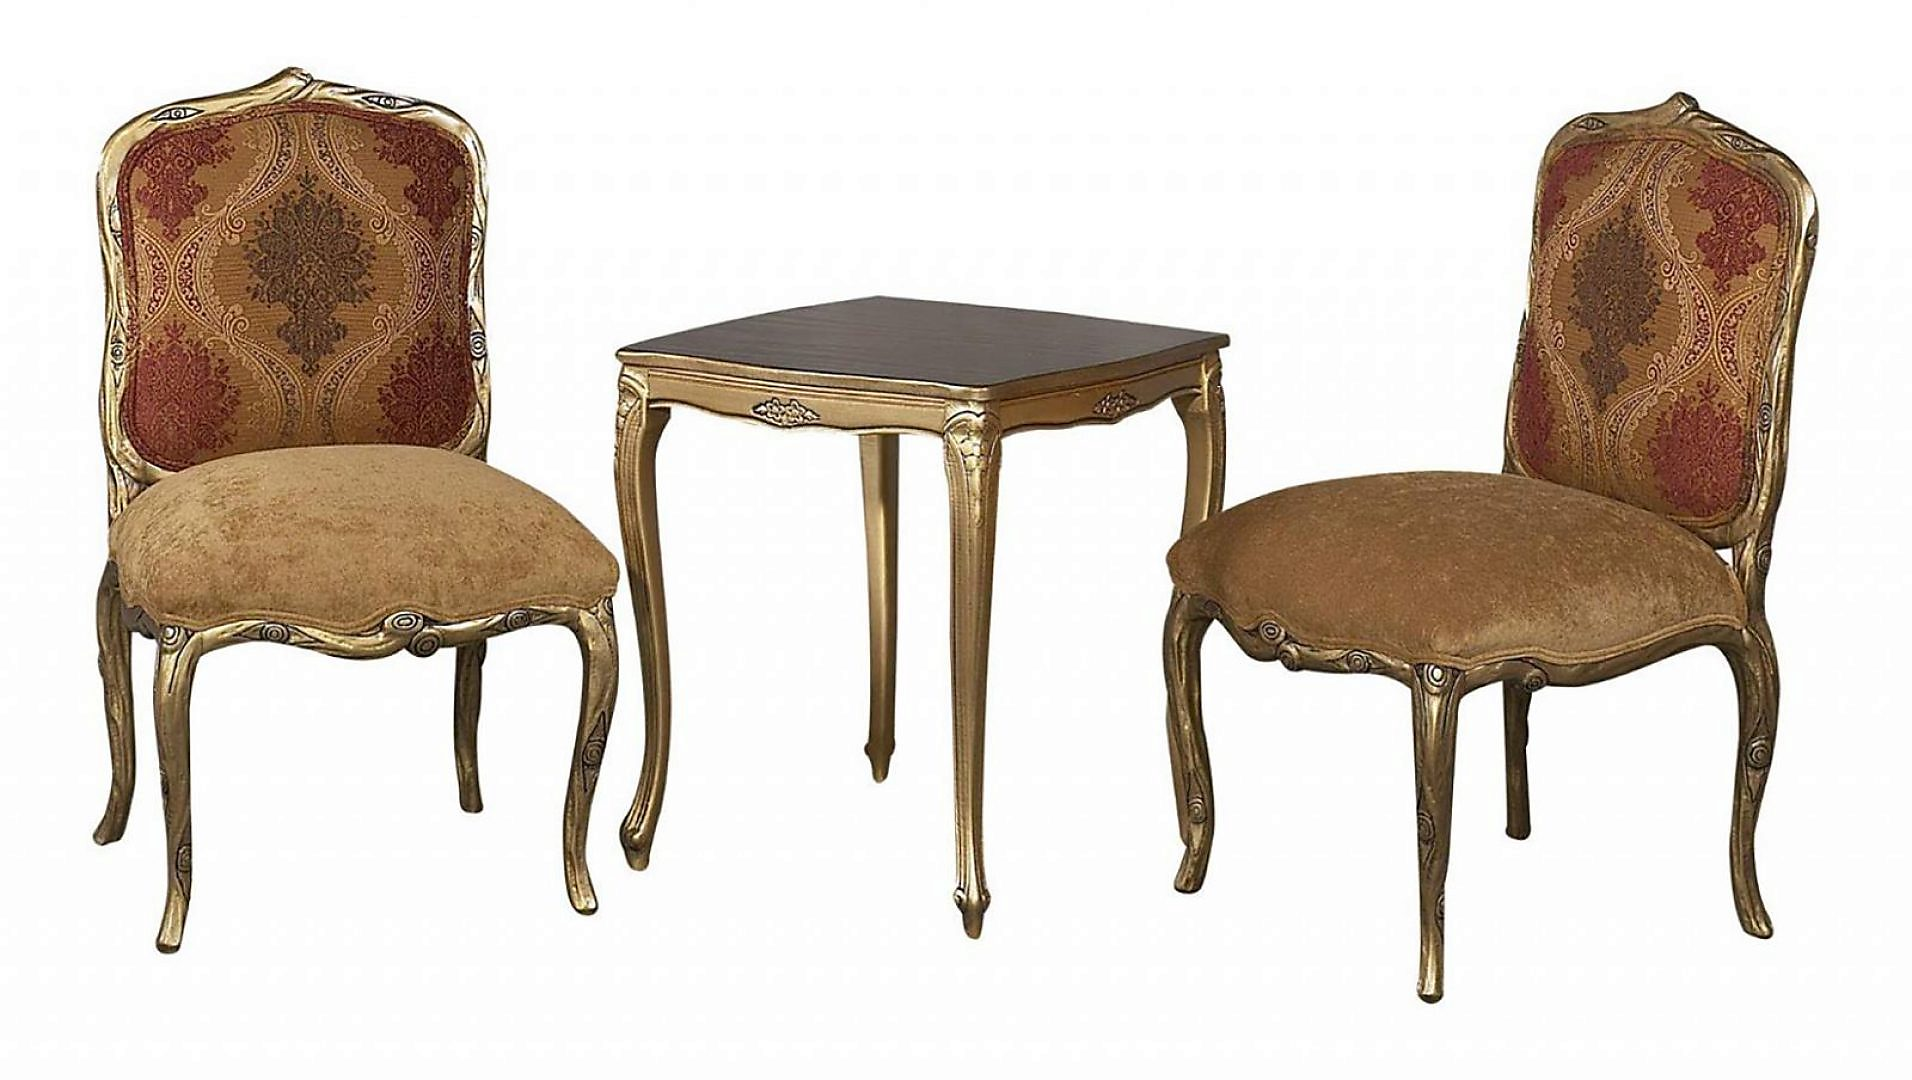 Classic, Traditional Golden Brown, Gold Finish Chenille and Fabric, Wood, Solid Hardwood Side Chair Set 3 pcs K76-Side-120-End by Benneti